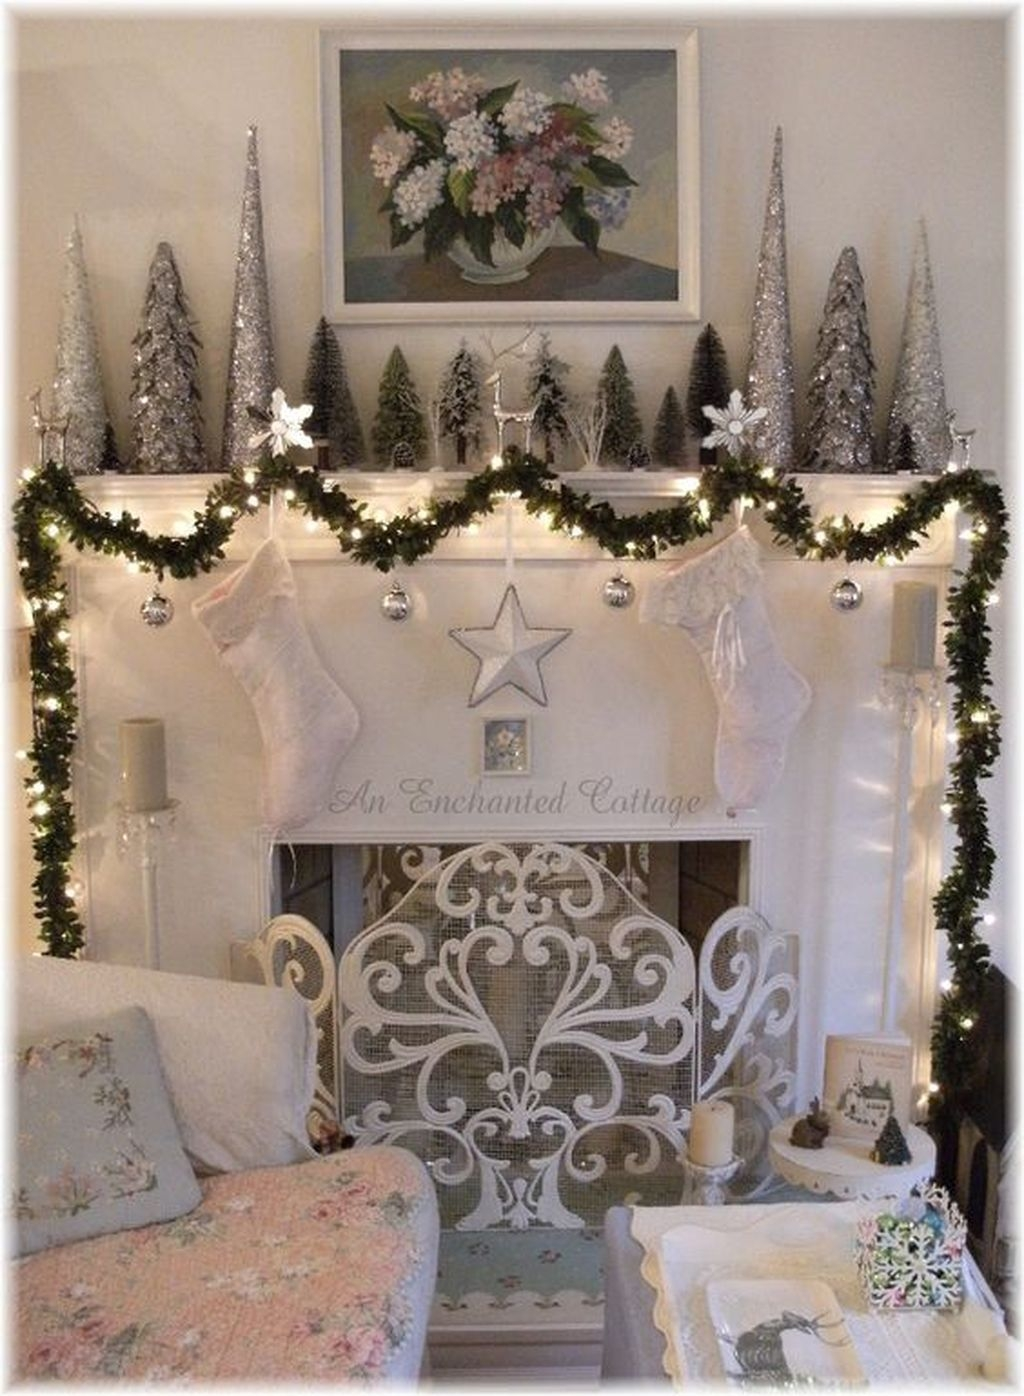 The Best Christmas Fireplace Decoration For Any Home Model 24